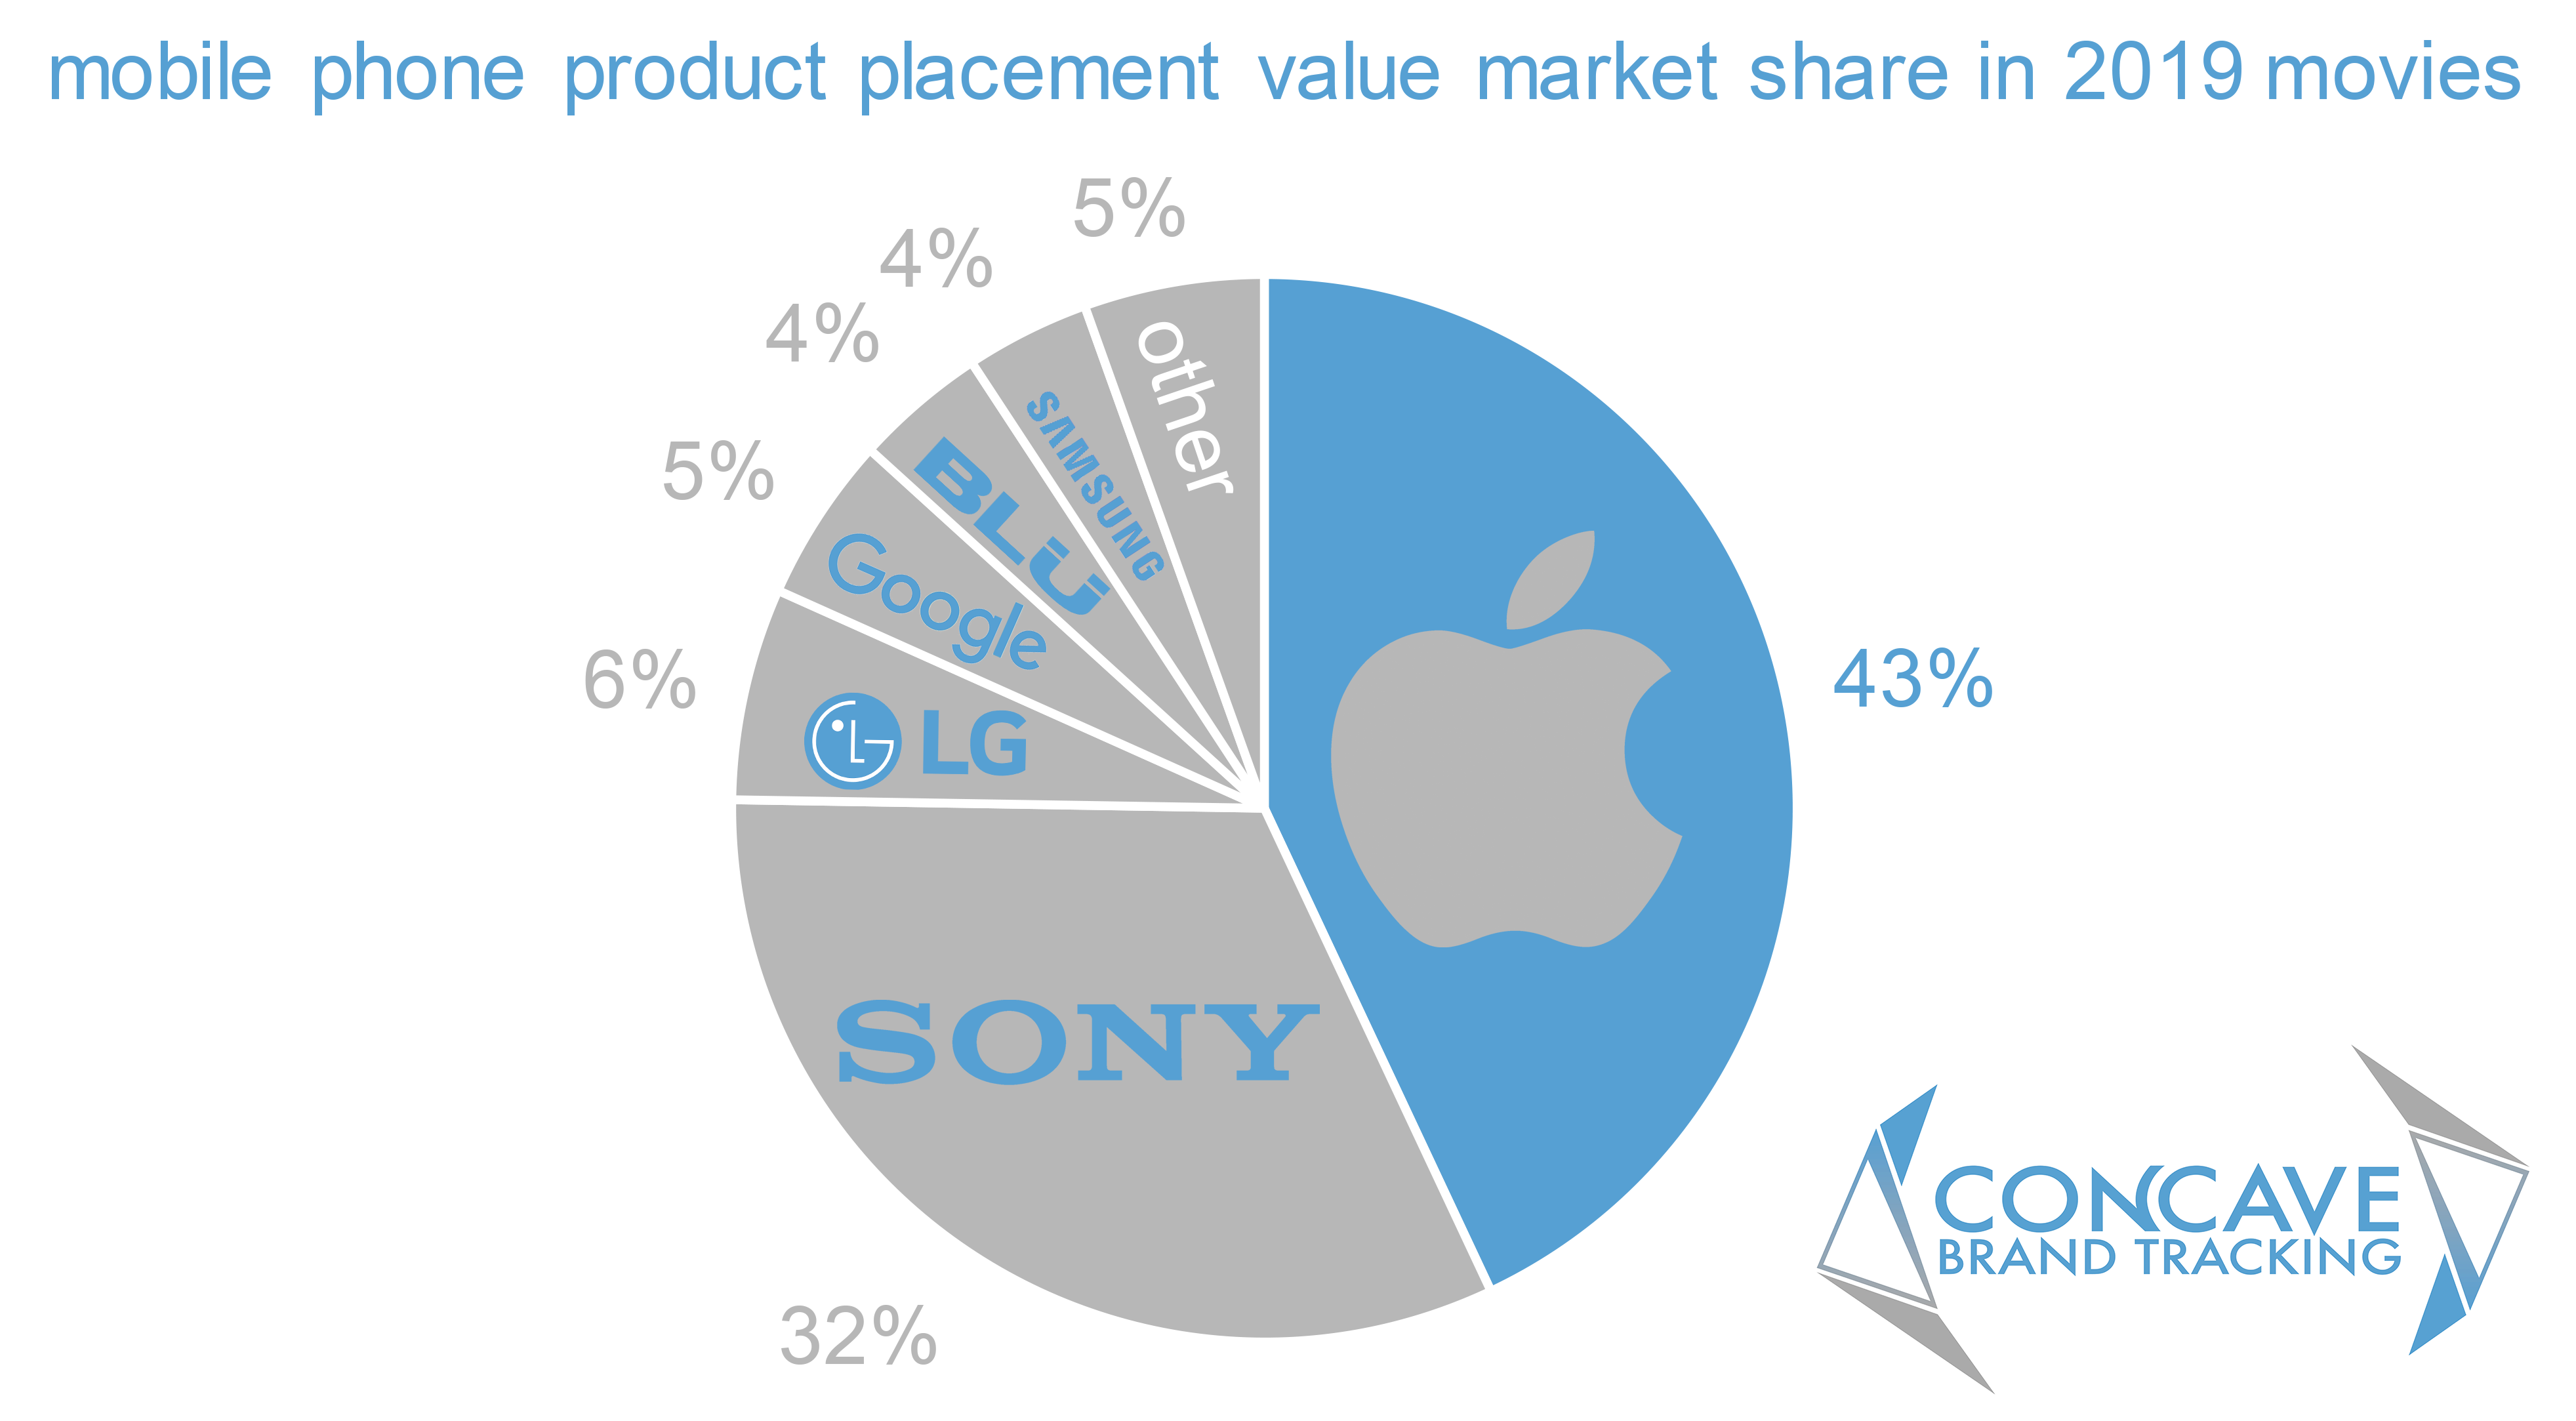 product placement, brands, movies, entertainment marketing, apple, market share, value, iphone